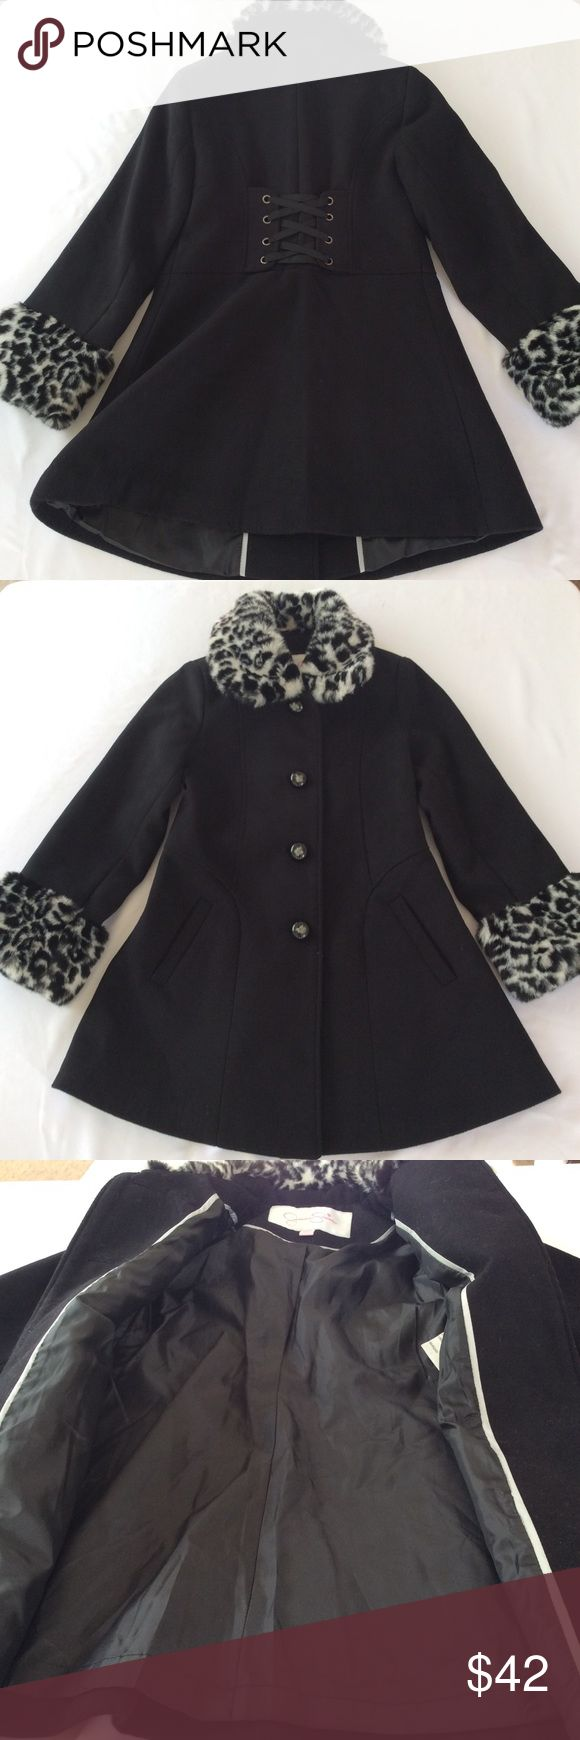 Jessica Simpson Girls Peacoat Coat Jacket 7/8 In excellent preowned condition Jessica Simpson Jackets & Coats